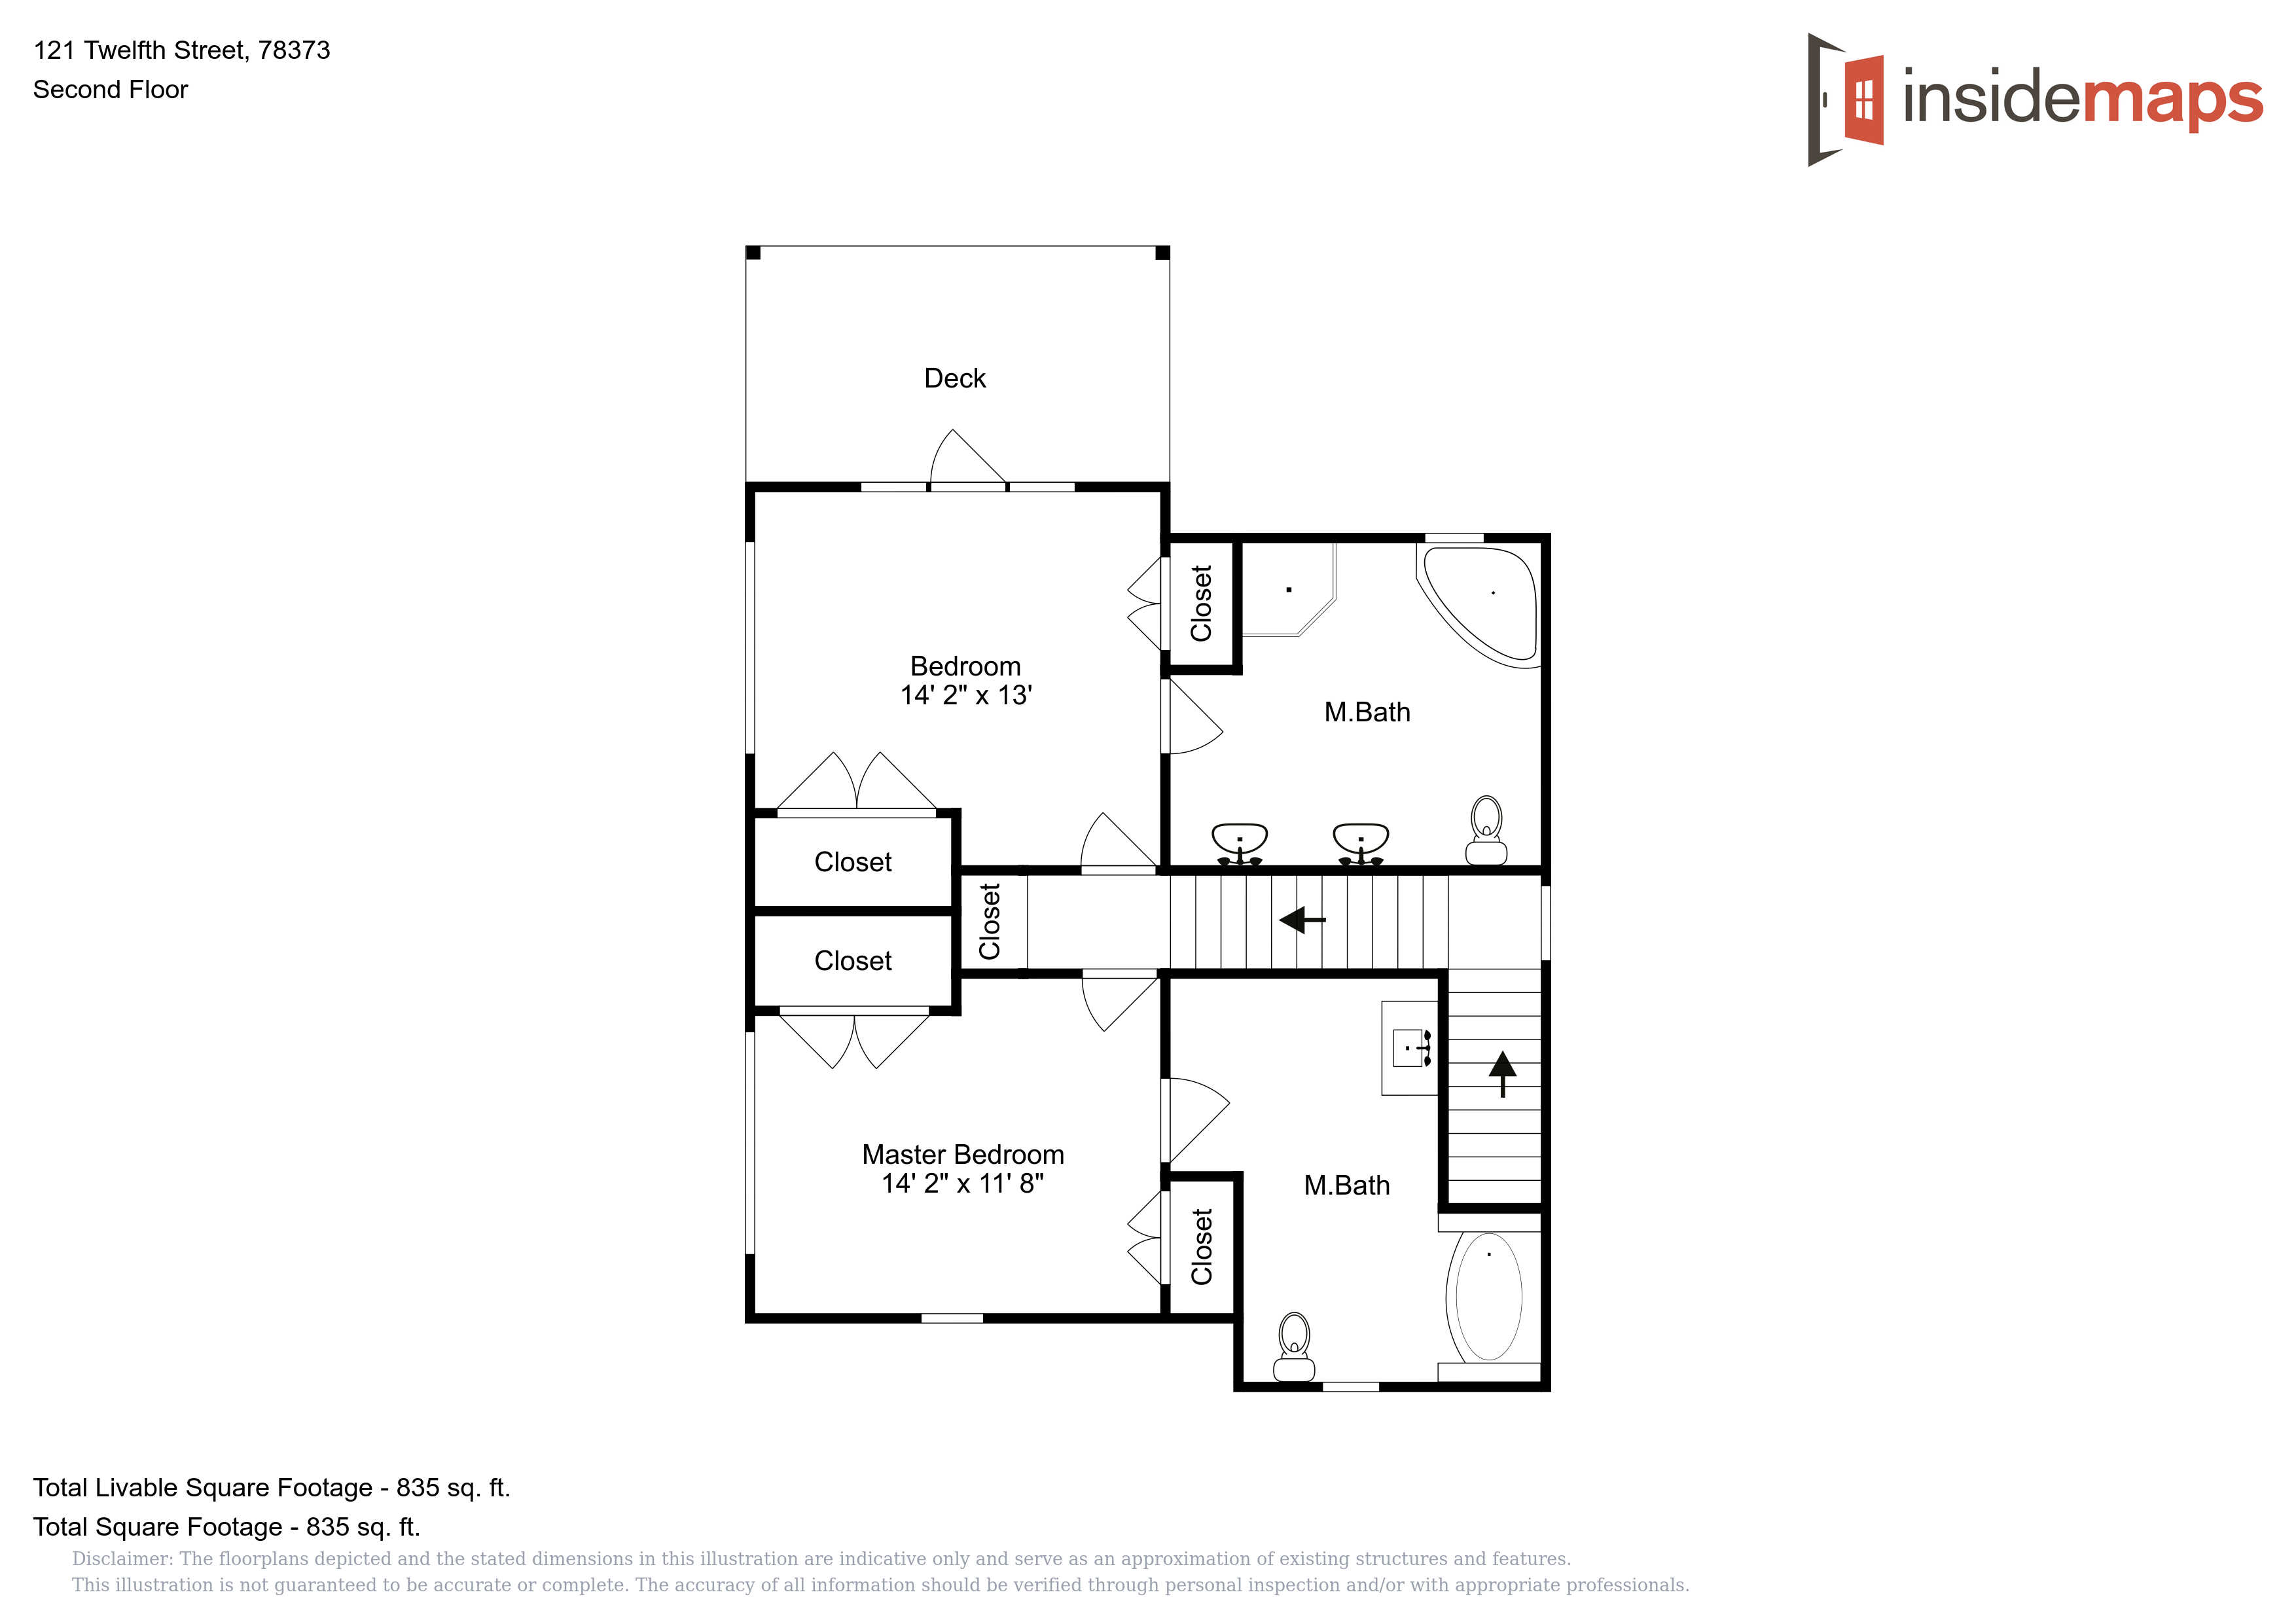 121 12th Street | Life in Paradise Vacation Rentals Offered Schematics Suggesting Peace on